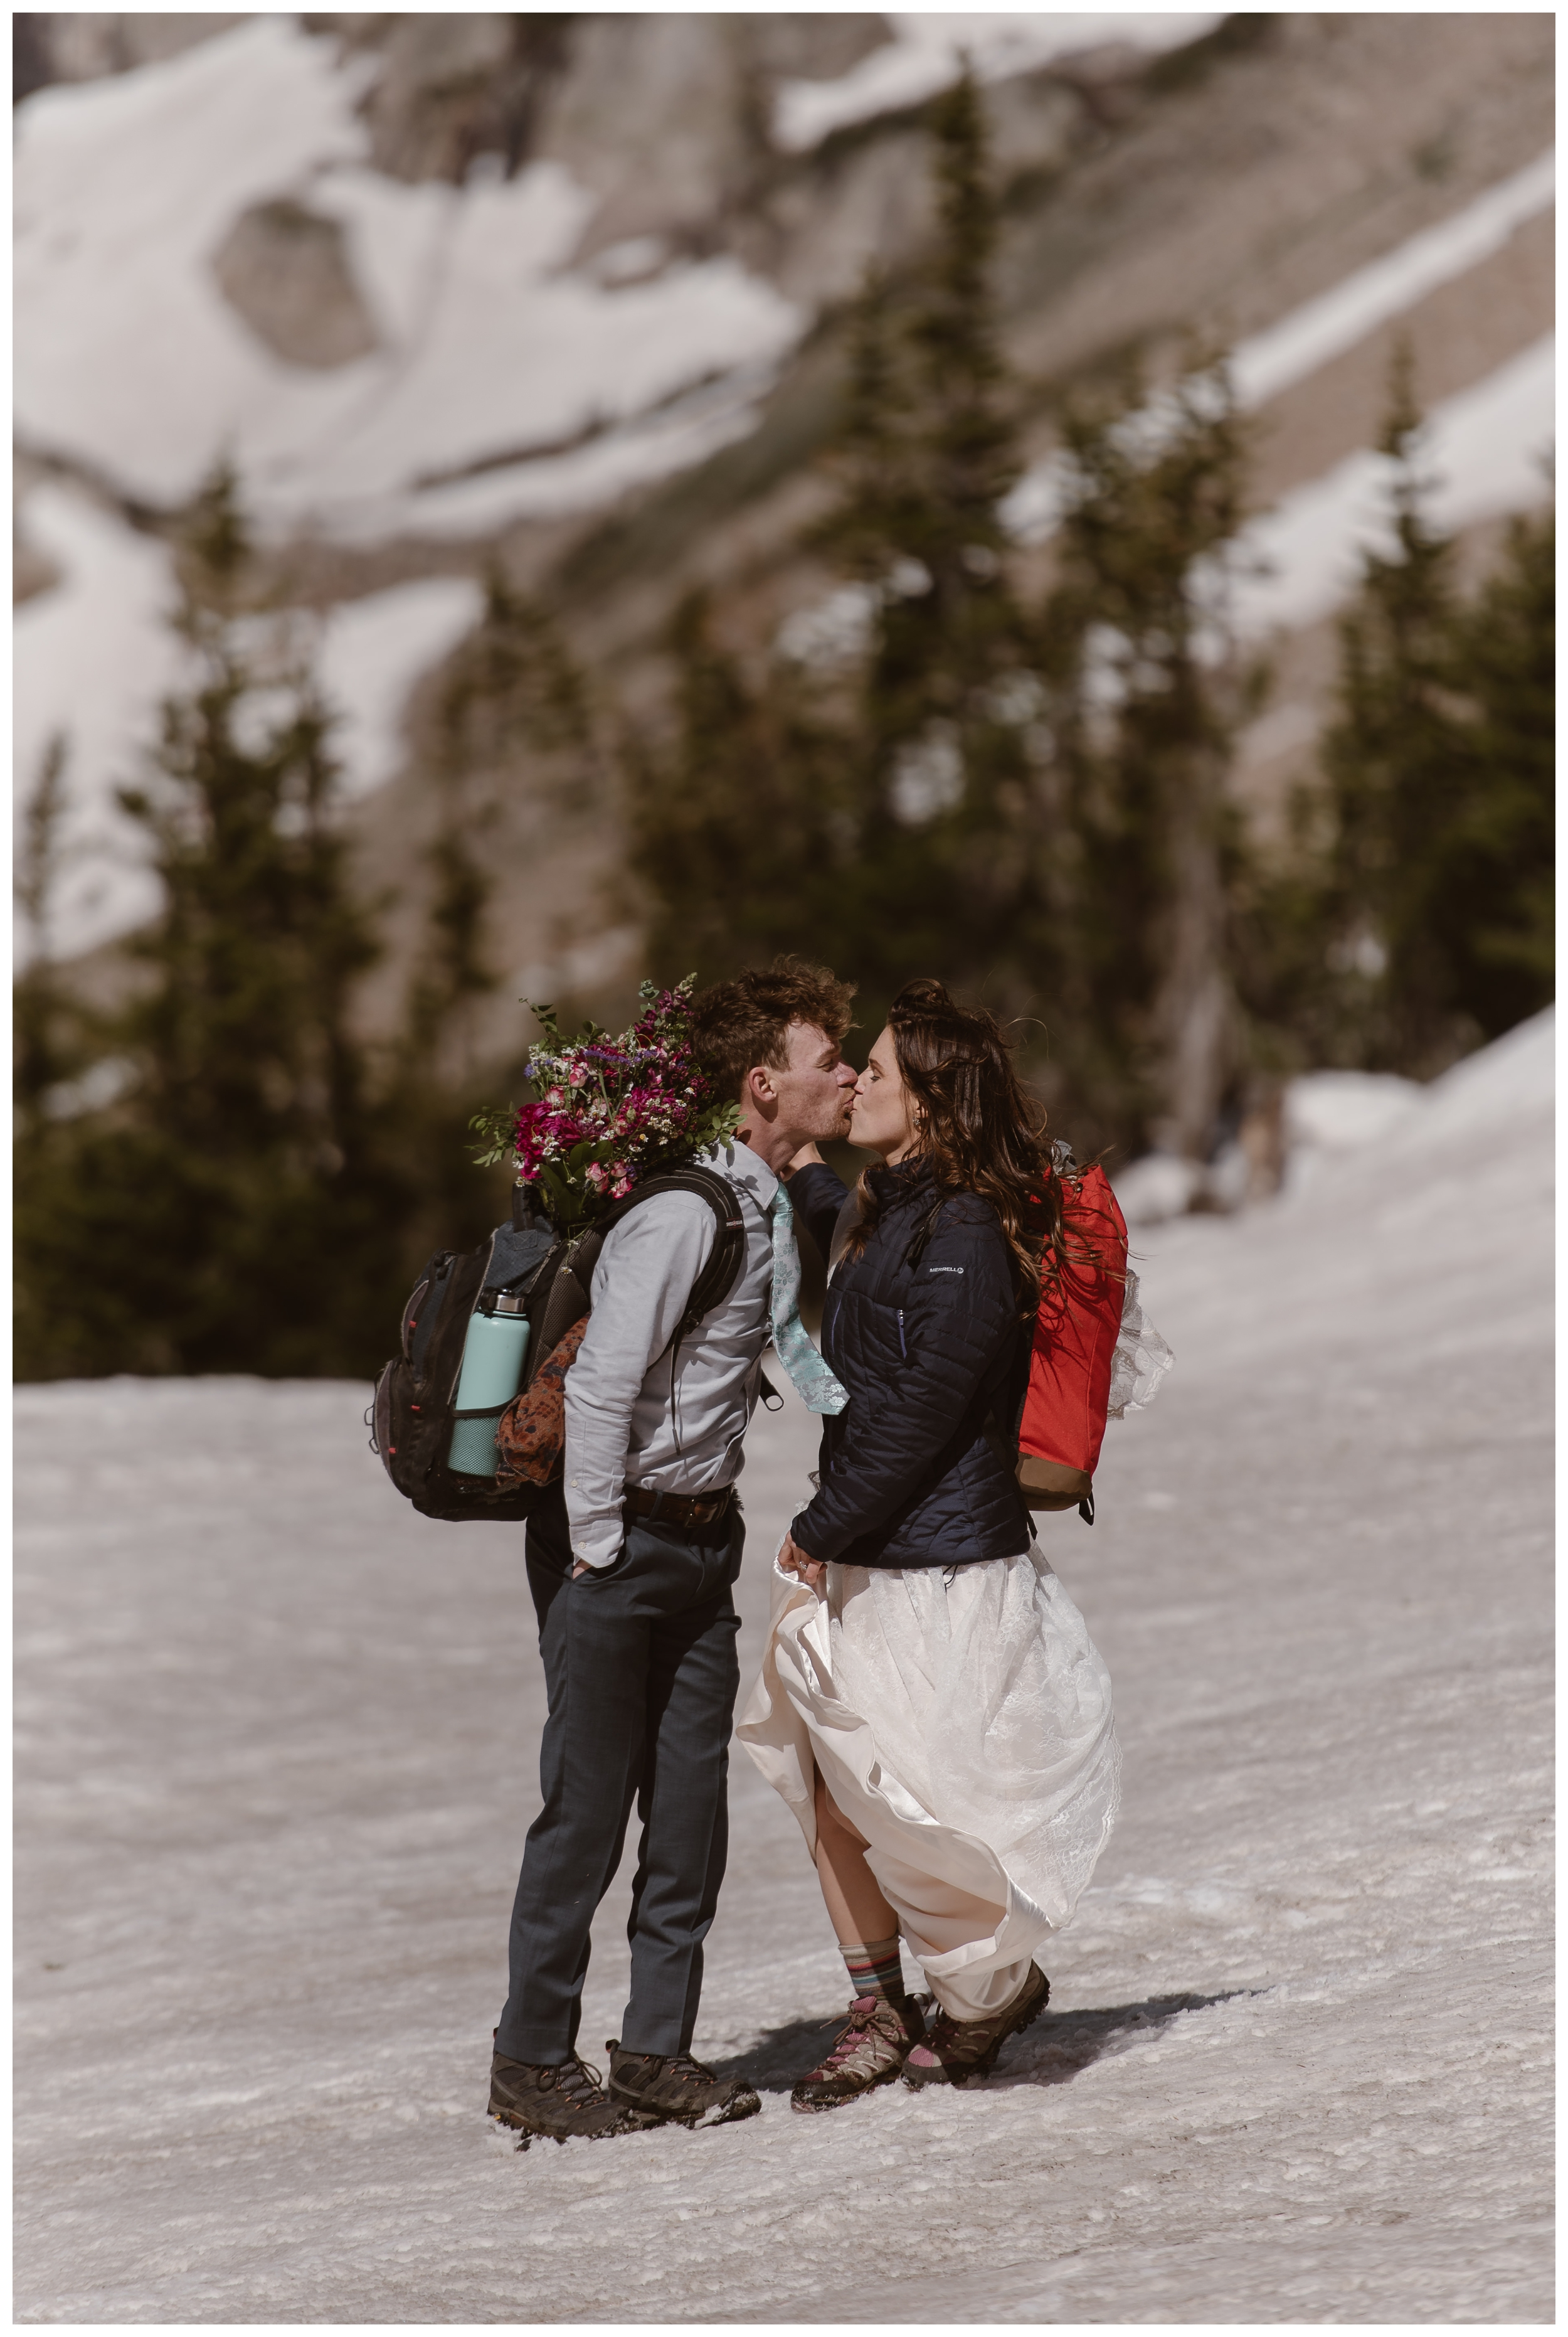 Karen and Matt kiss in a snow field at the top of Lake Isabelle, in Nederland, Colorado following their high alpine lake elopement ceremony. Photo by Adventure Instead, Maddie Mae.